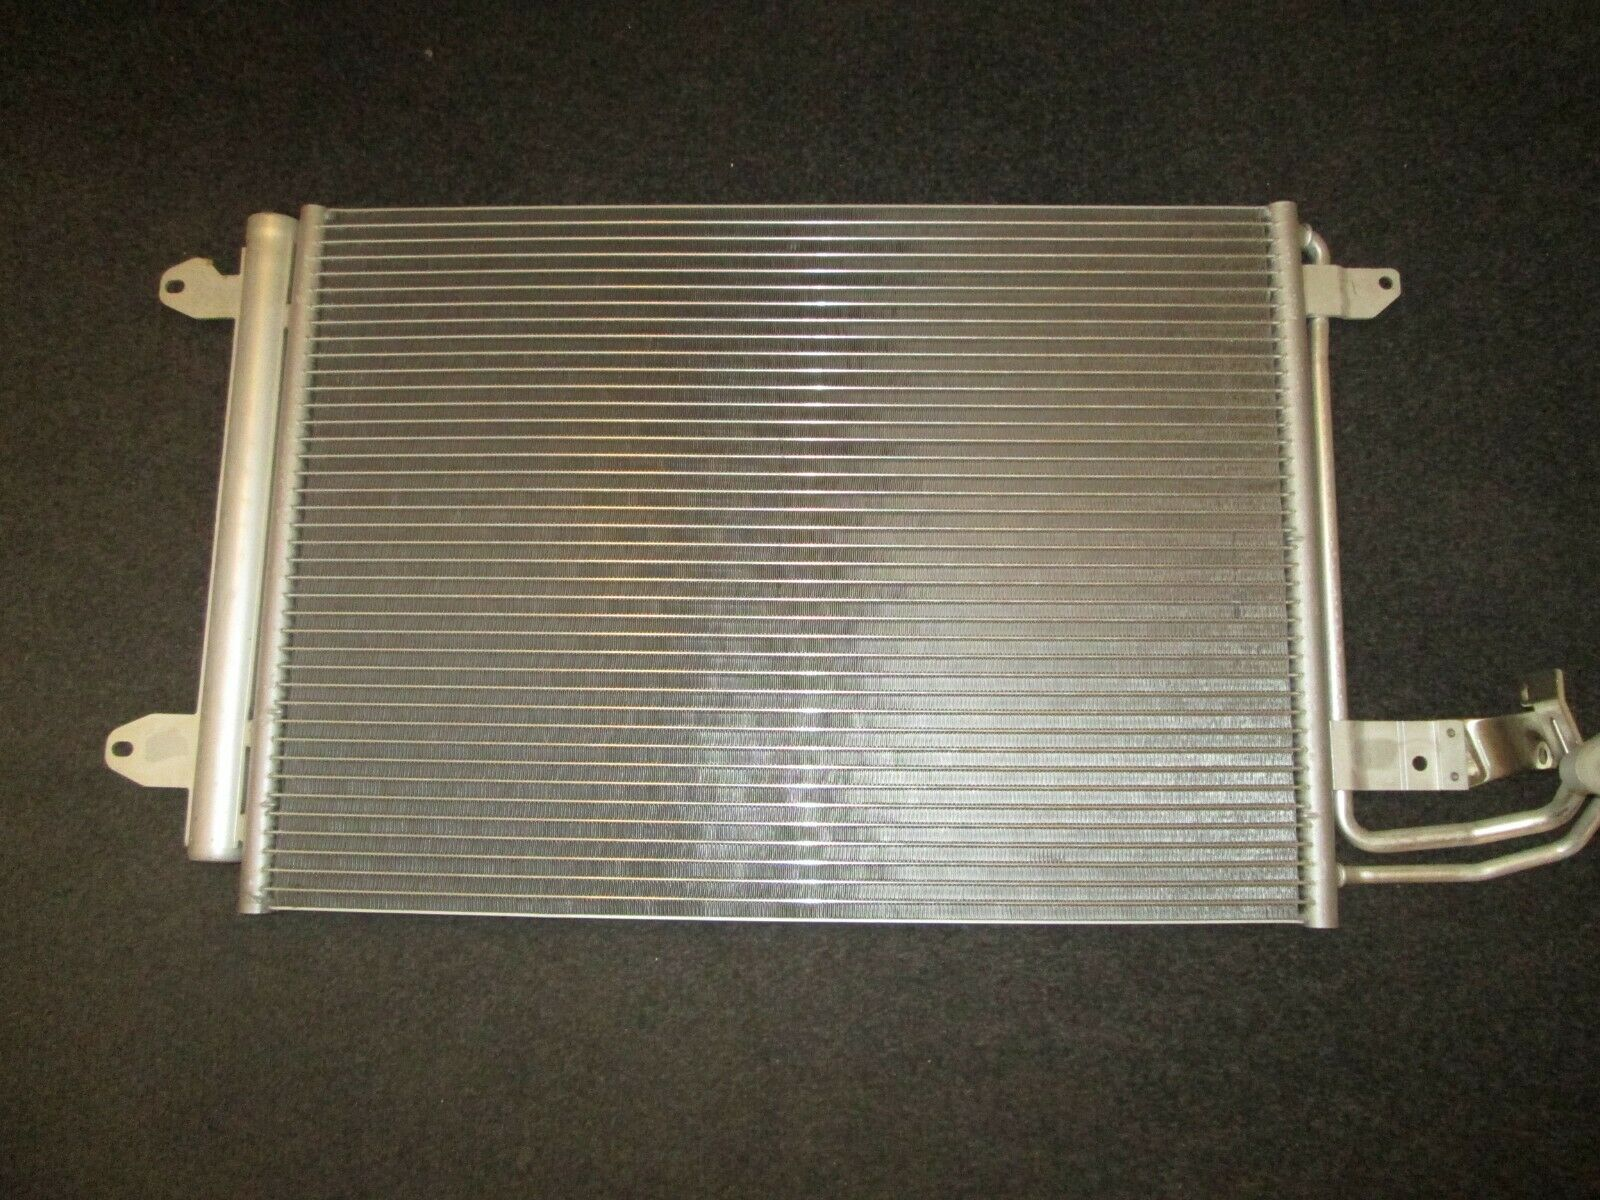 PANDA AIR CON RADIATOR TO FIT FORD KA 500C FIAT 500 BRAND NEW CONDENSER